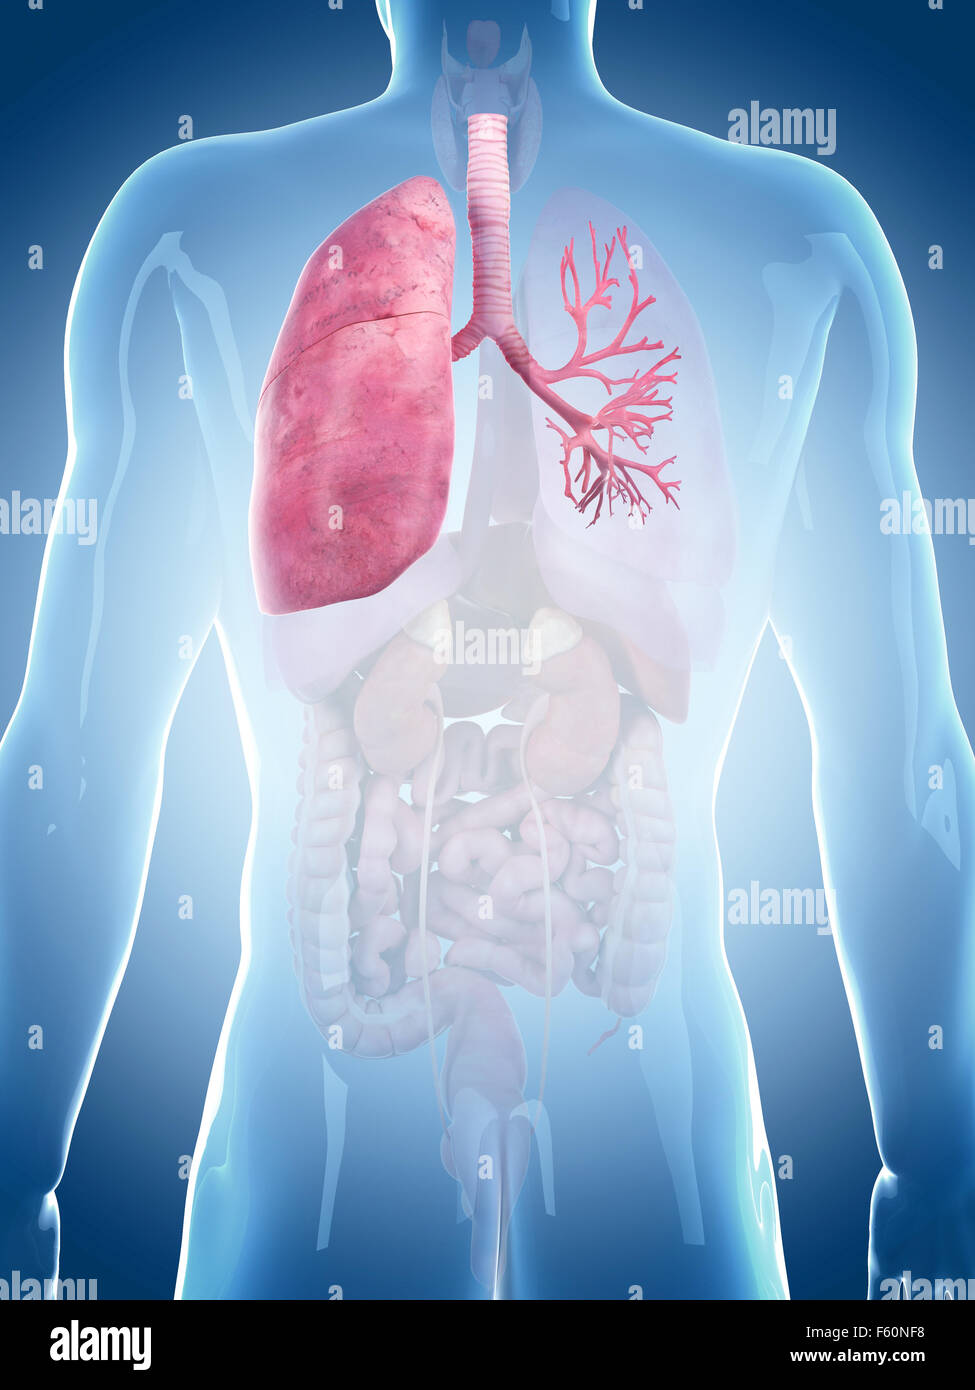 medically accurate illustration of the lung - Stock Image